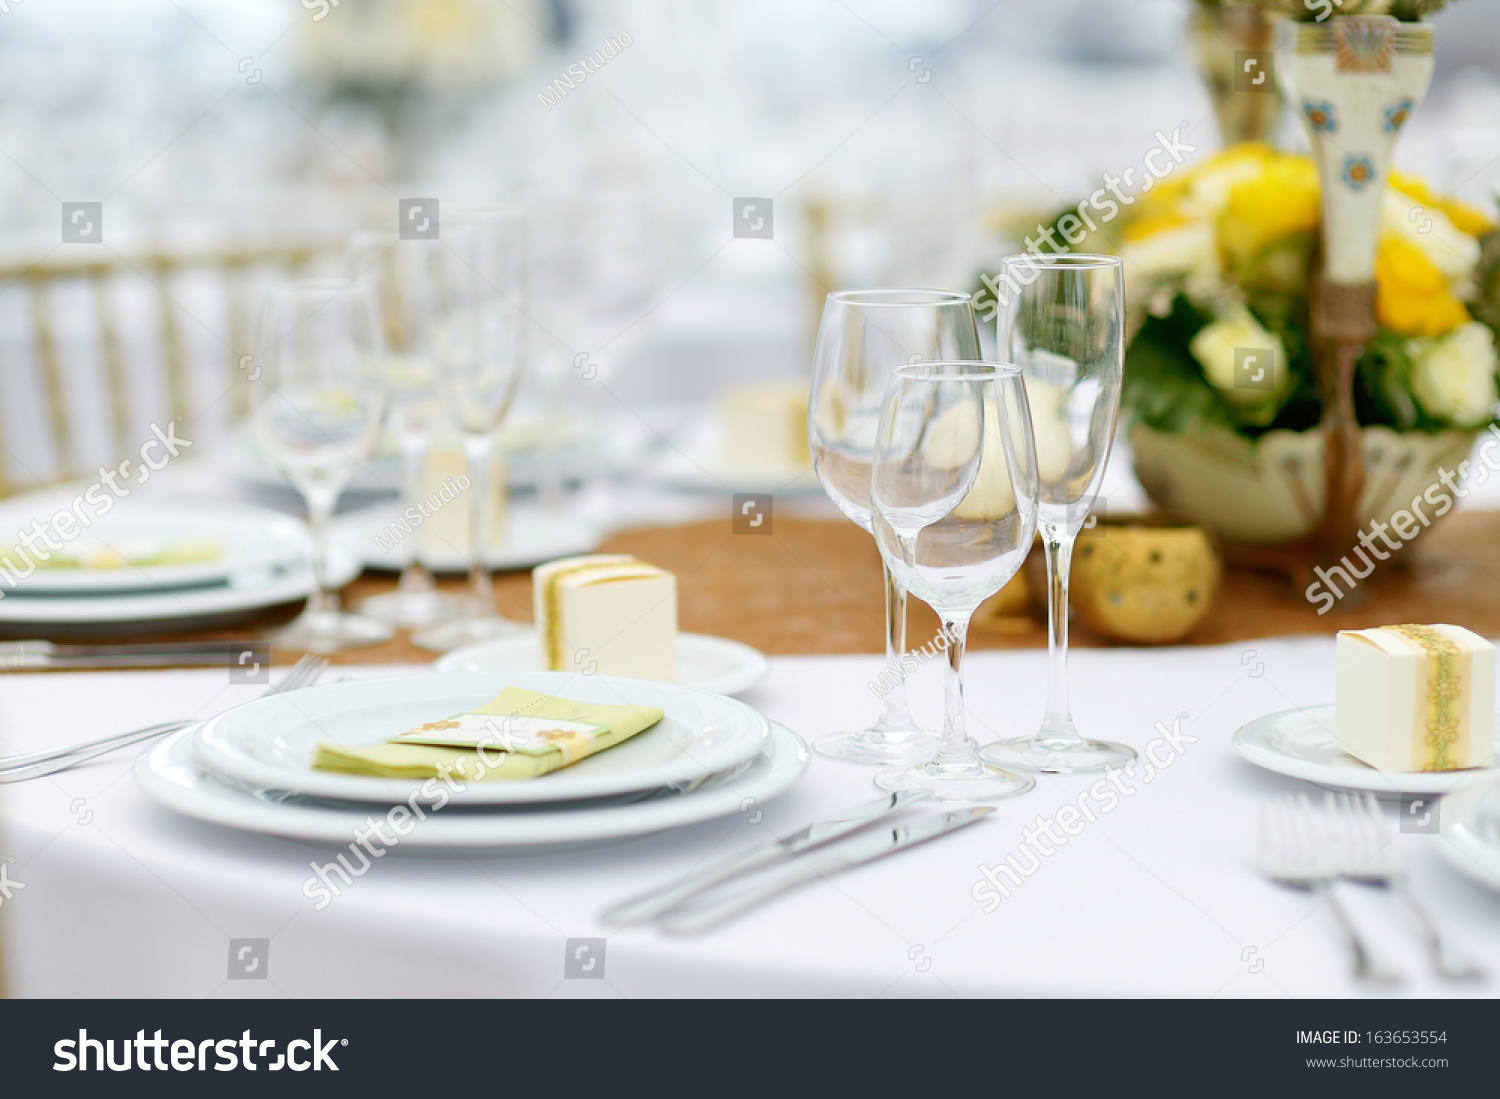 Table Set Event Party Wedding Reception Stock Photo & Image (Royalty ...